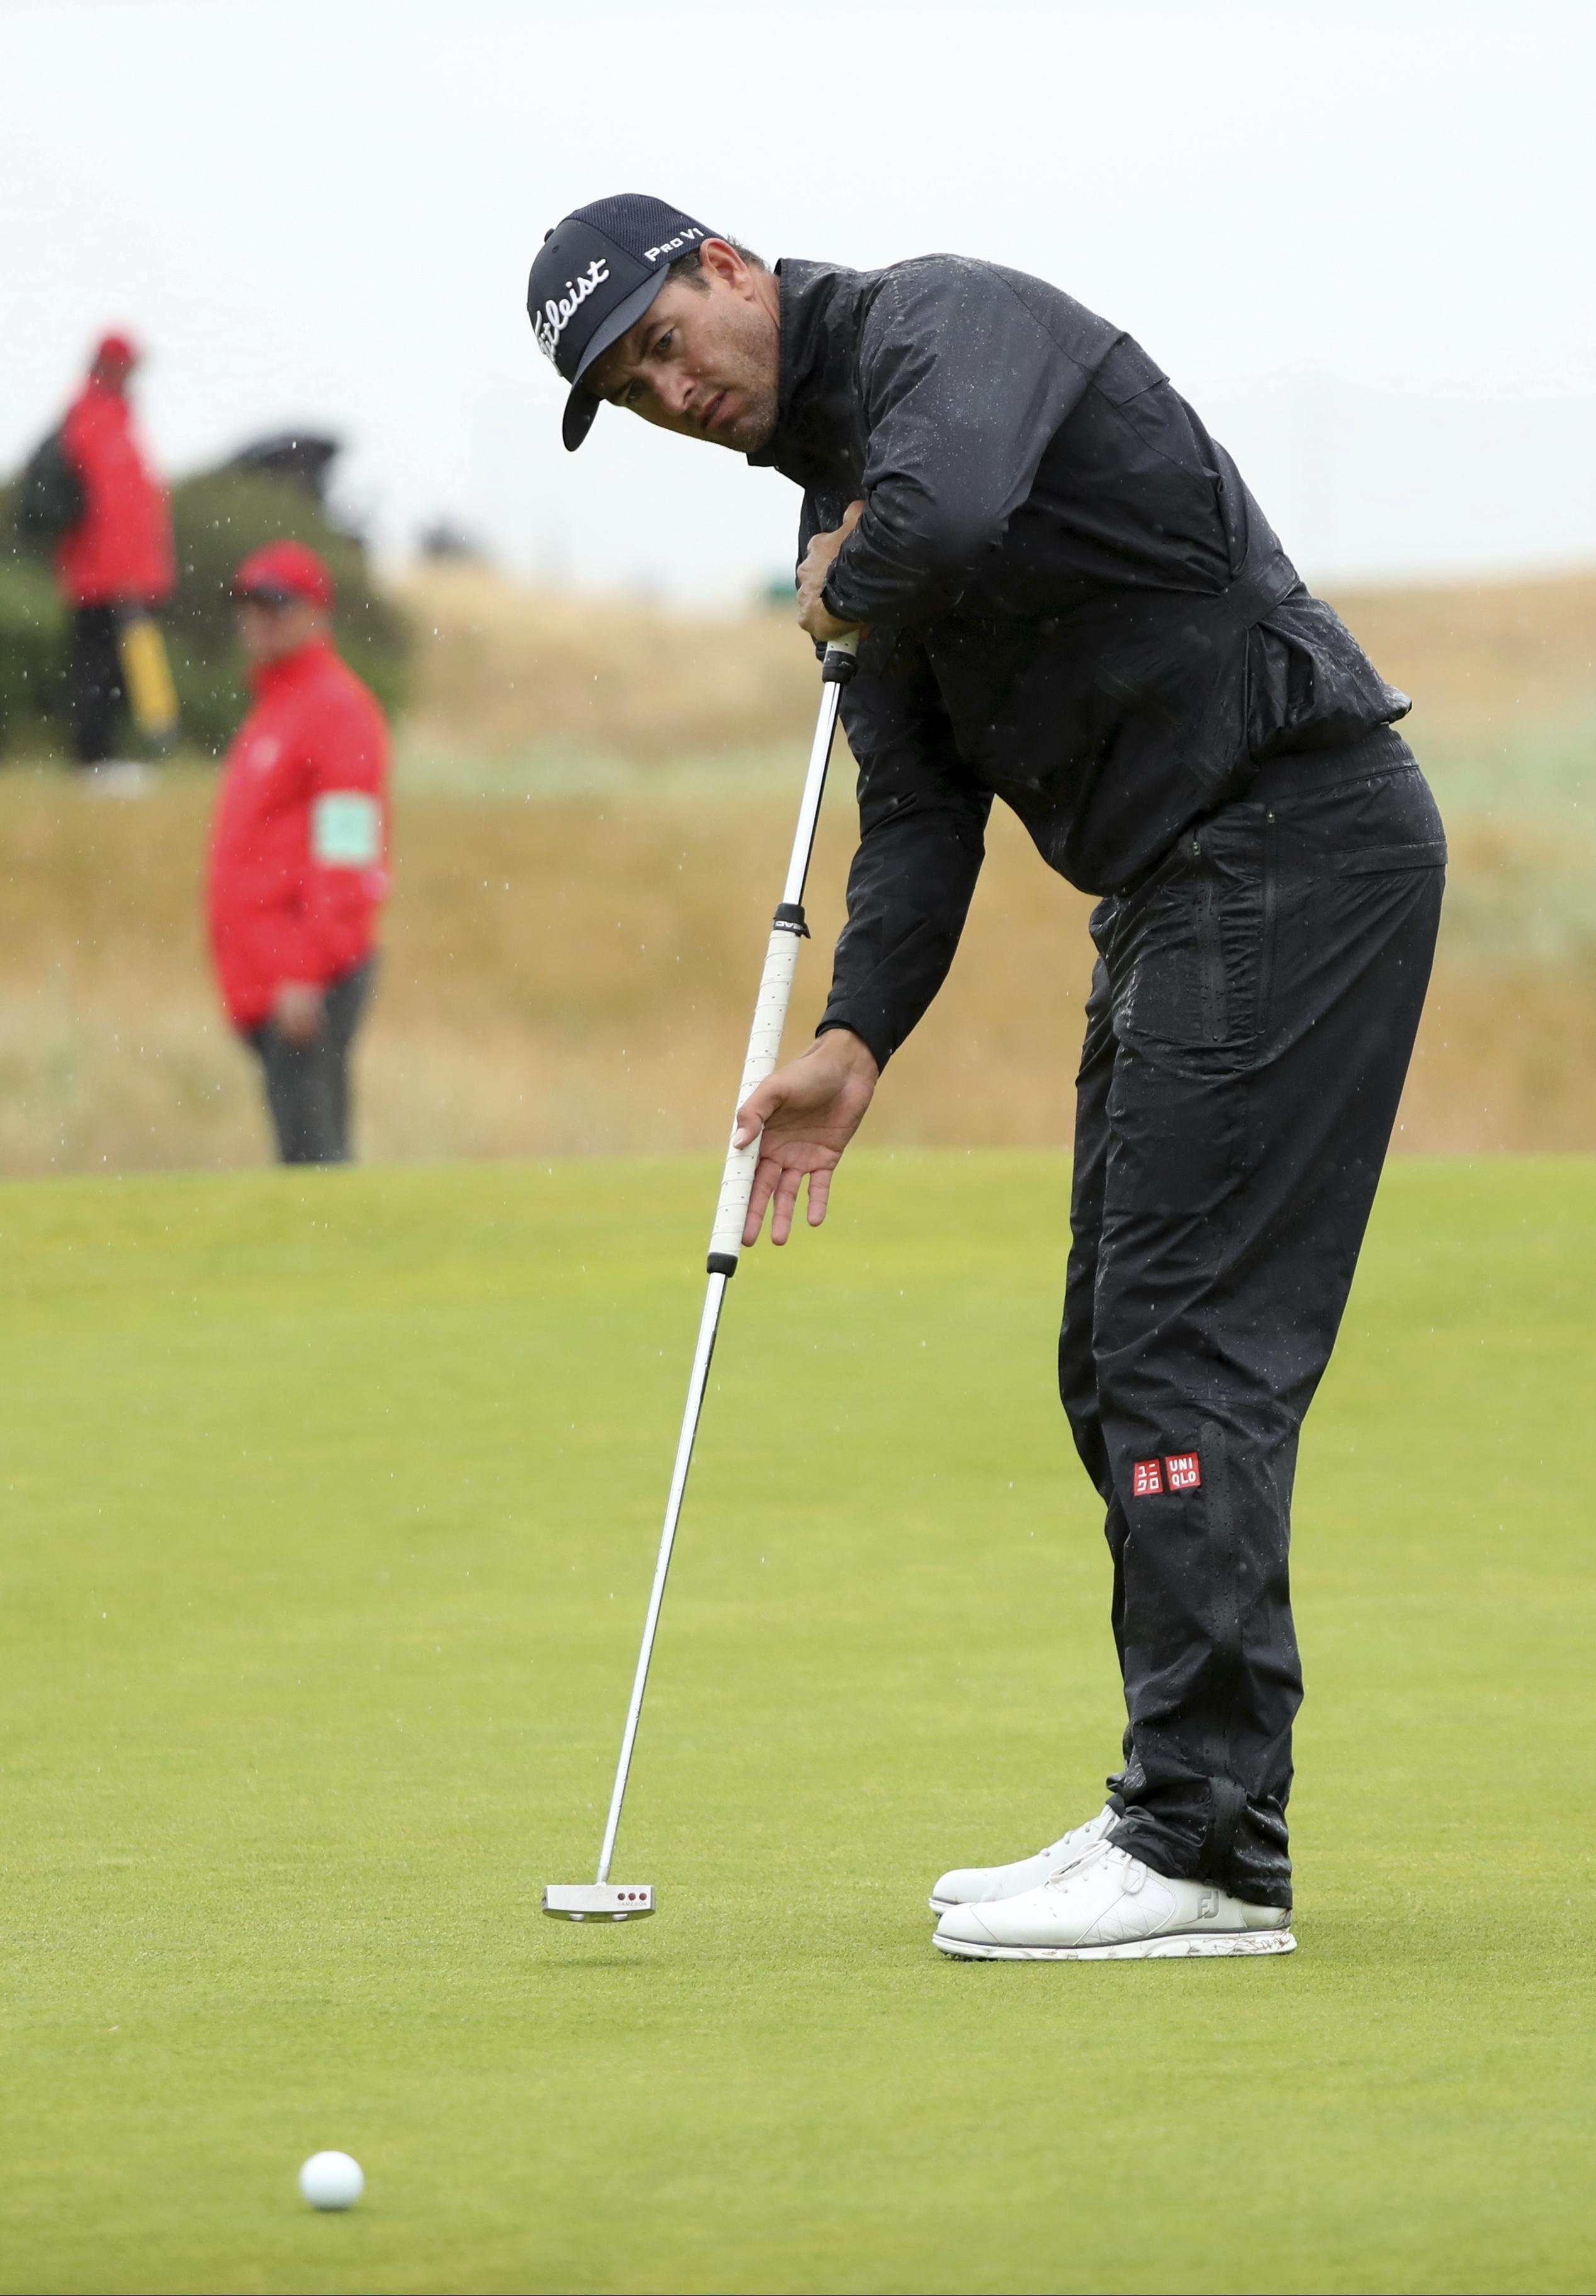 Some social media users felt Adam Scott was anchoring the putter to his body